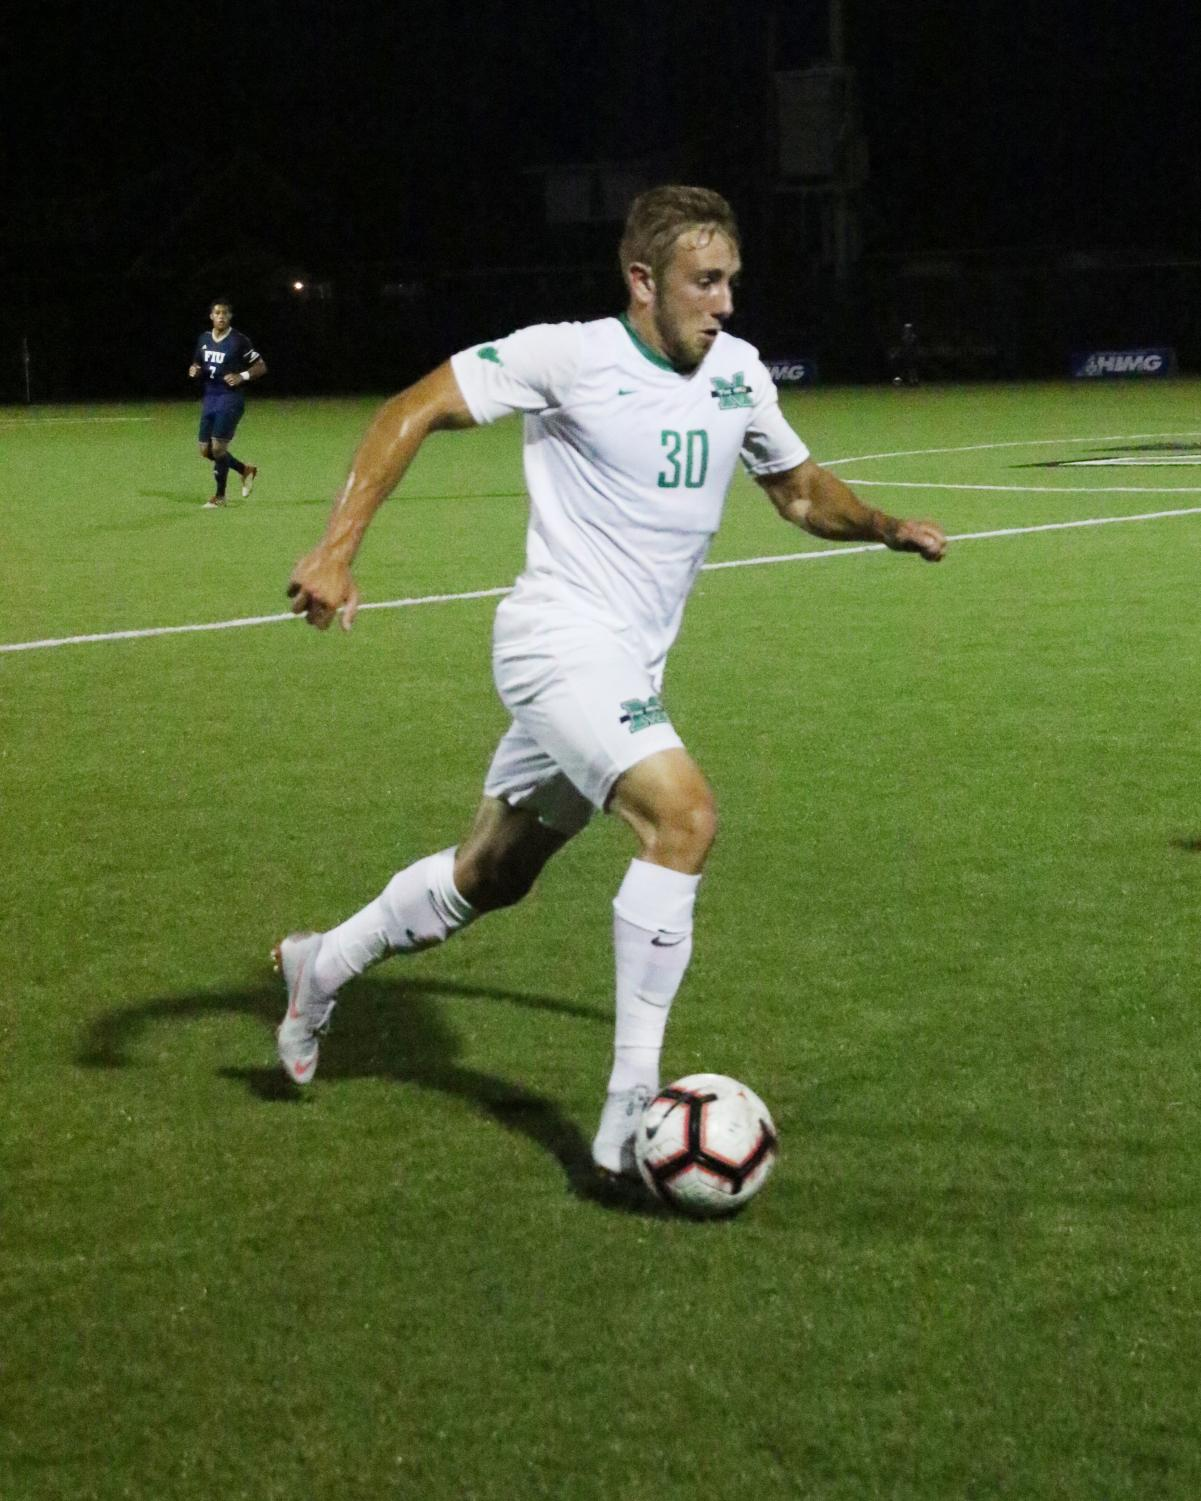 Freshman defender Jan-Erik Leinhos handles the ball across midfield in a Marshall home match in 2018.